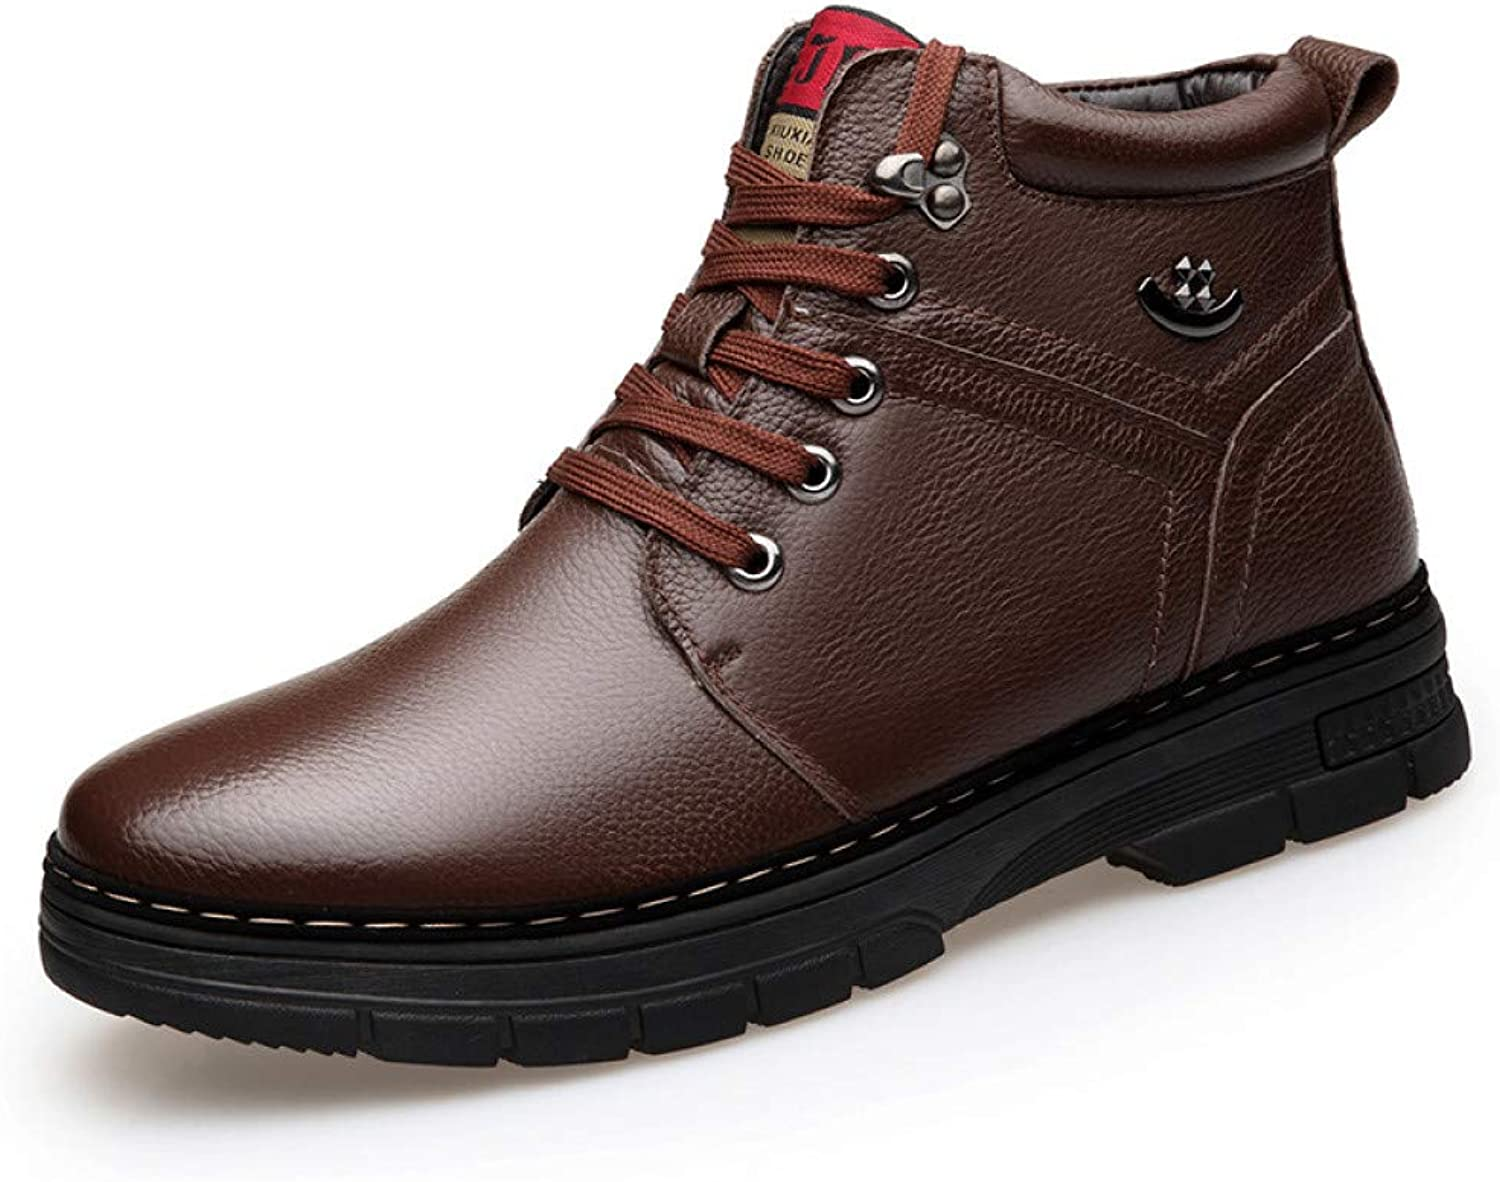 FHCGMX Mens Boots Winter Lace Up Style Leather Snow shoes Ankle Keep Warm Male Boots